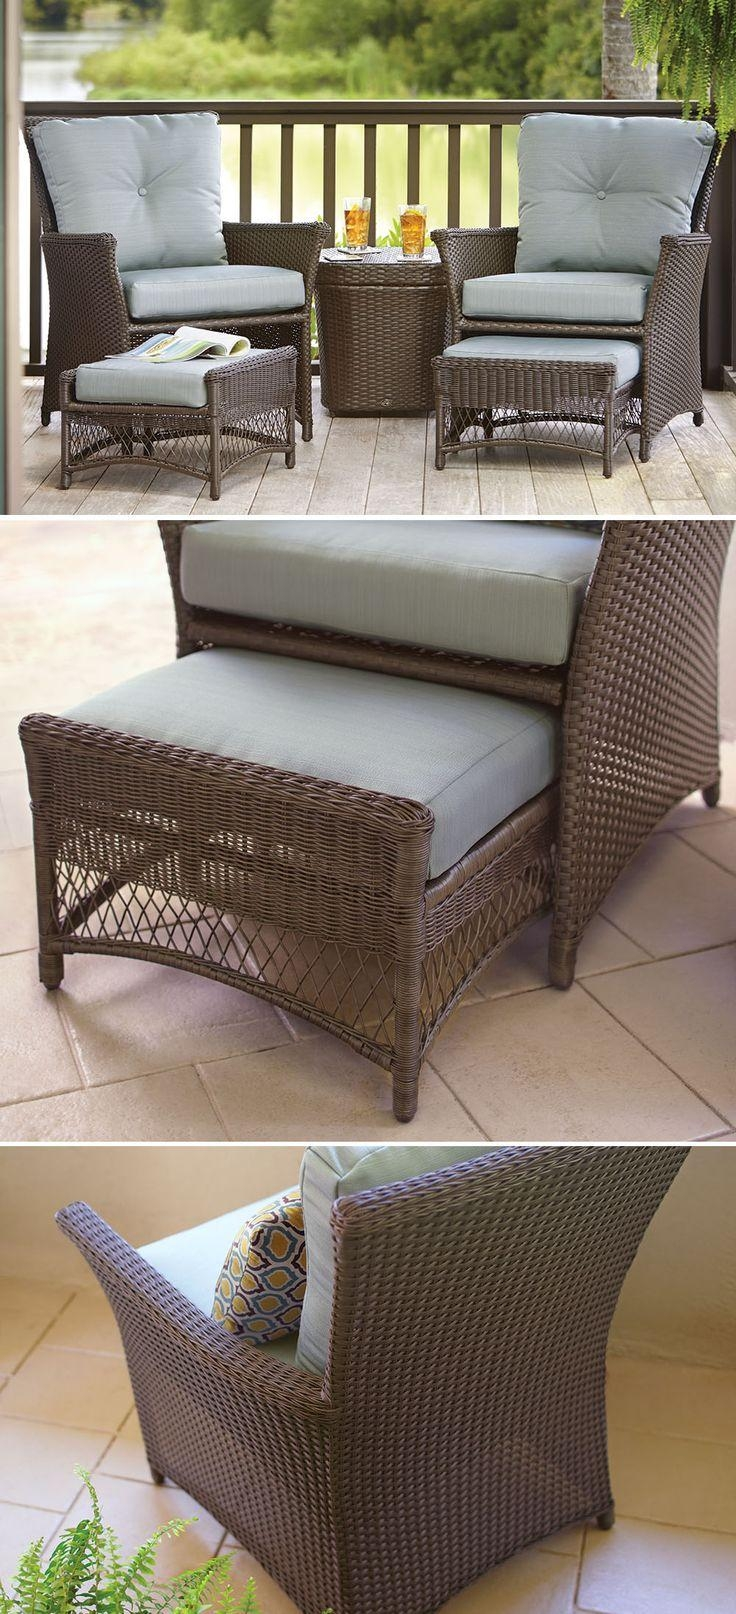 Best 25+ Deck Furniture Ideas On Pinterest | Outdoor Furniture With Patio Sofa Tables (Image 3 of 20)